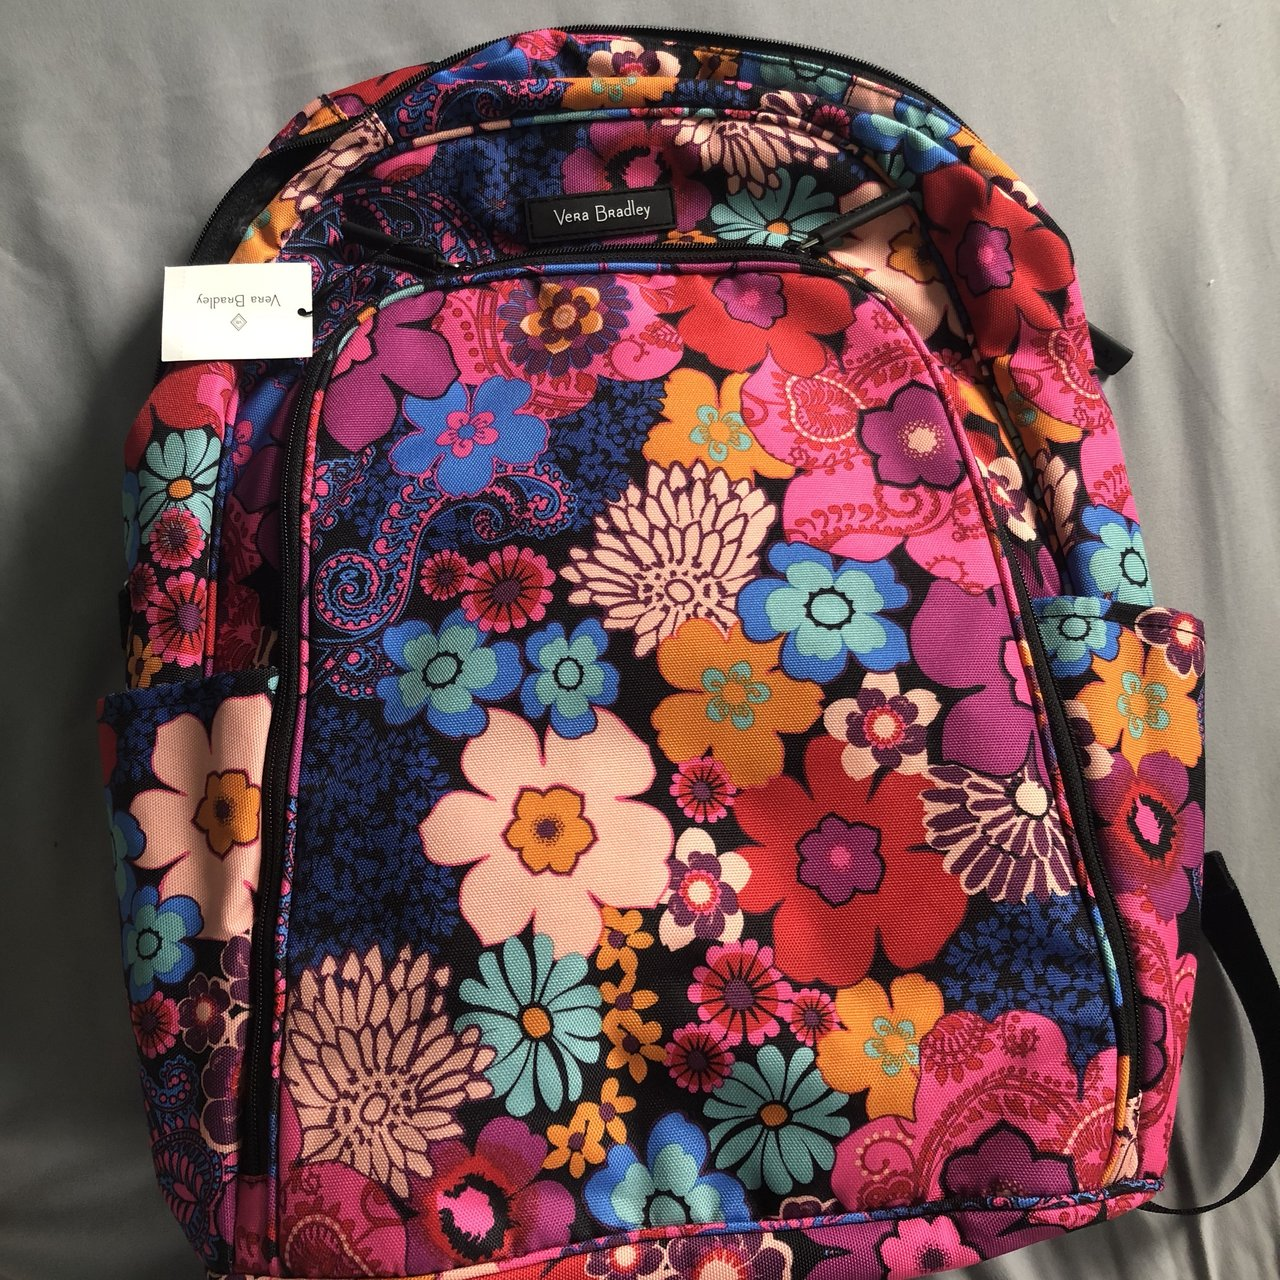 28680313e0  shelby j7. 6 months ago. United States. Vera Bradley laptop backpack  floral fiesta ...